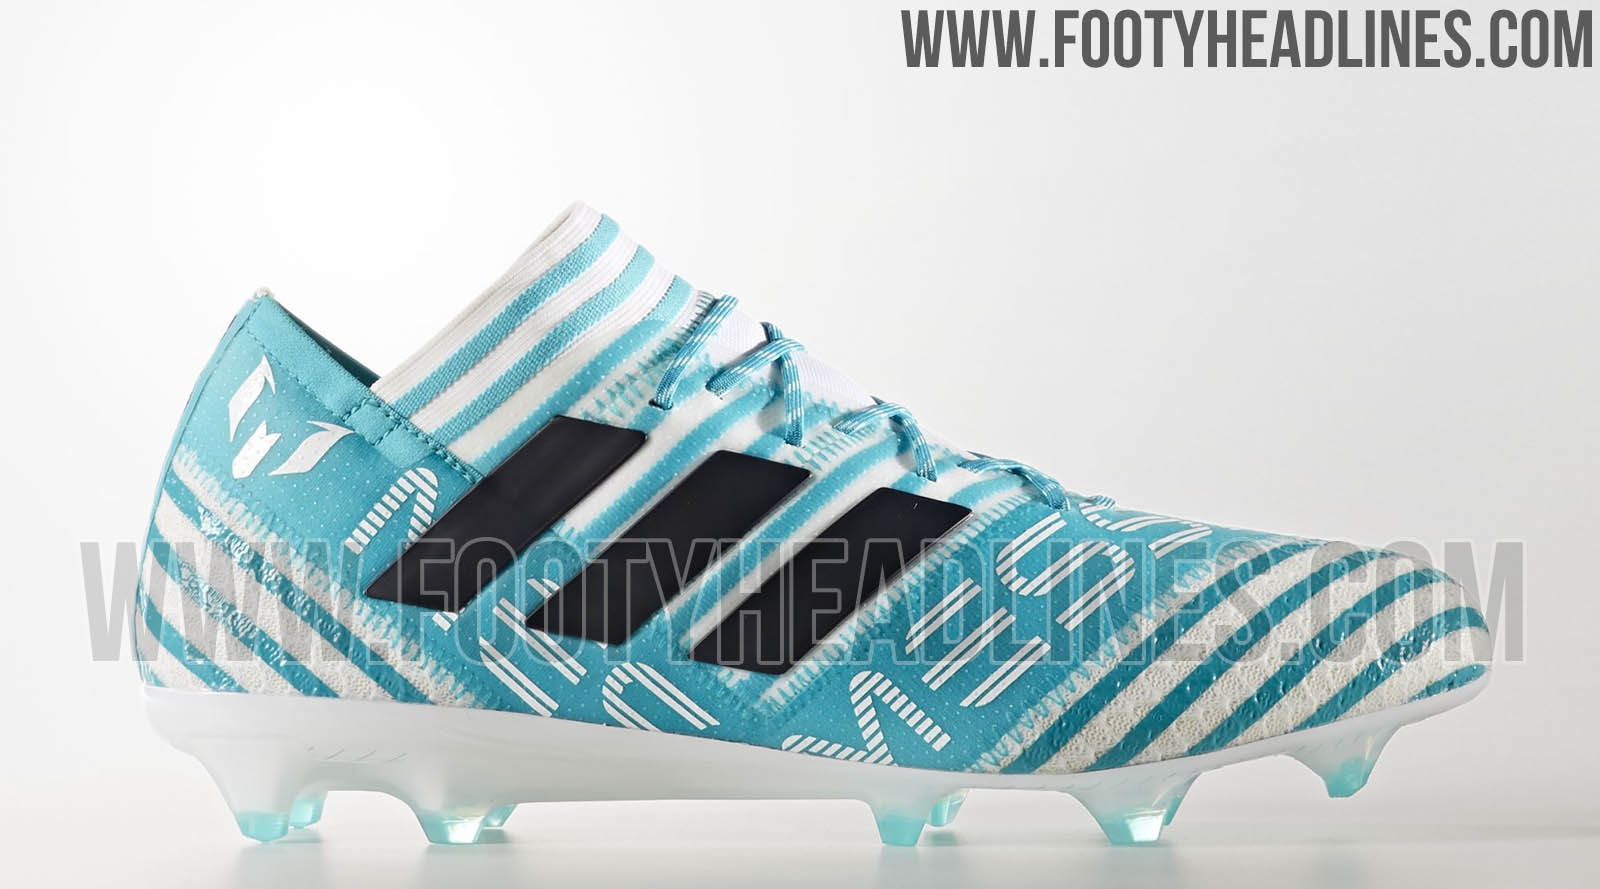 This image shows the Adidas Nemeziz Messi 17 Ocean Storm football boots.